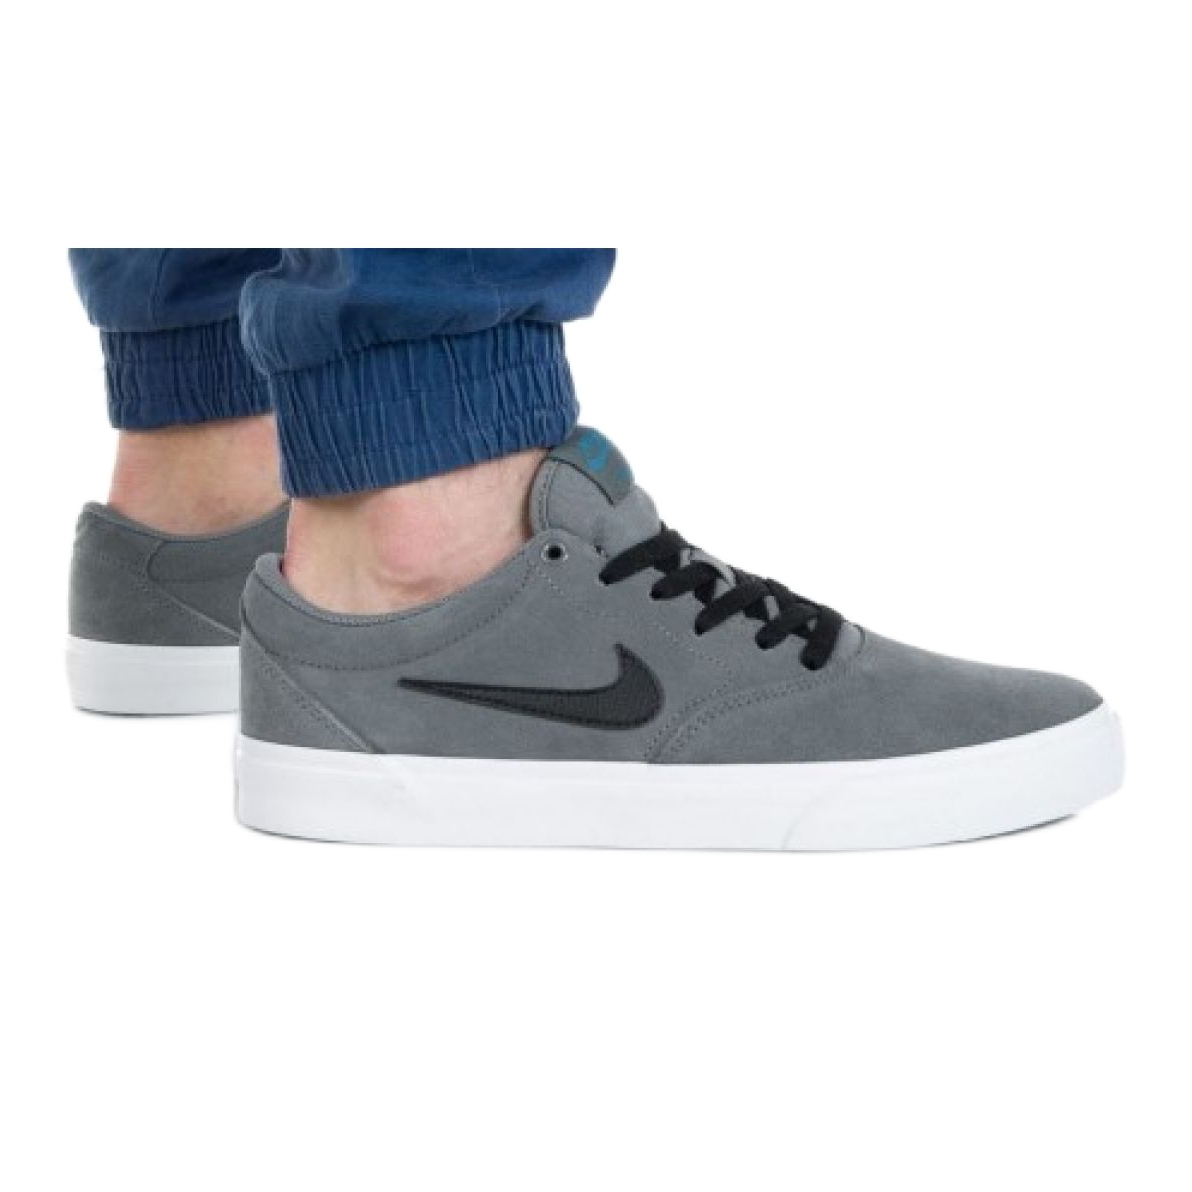 Nike Sb Charge Suede M CT3463-005 shoe grey